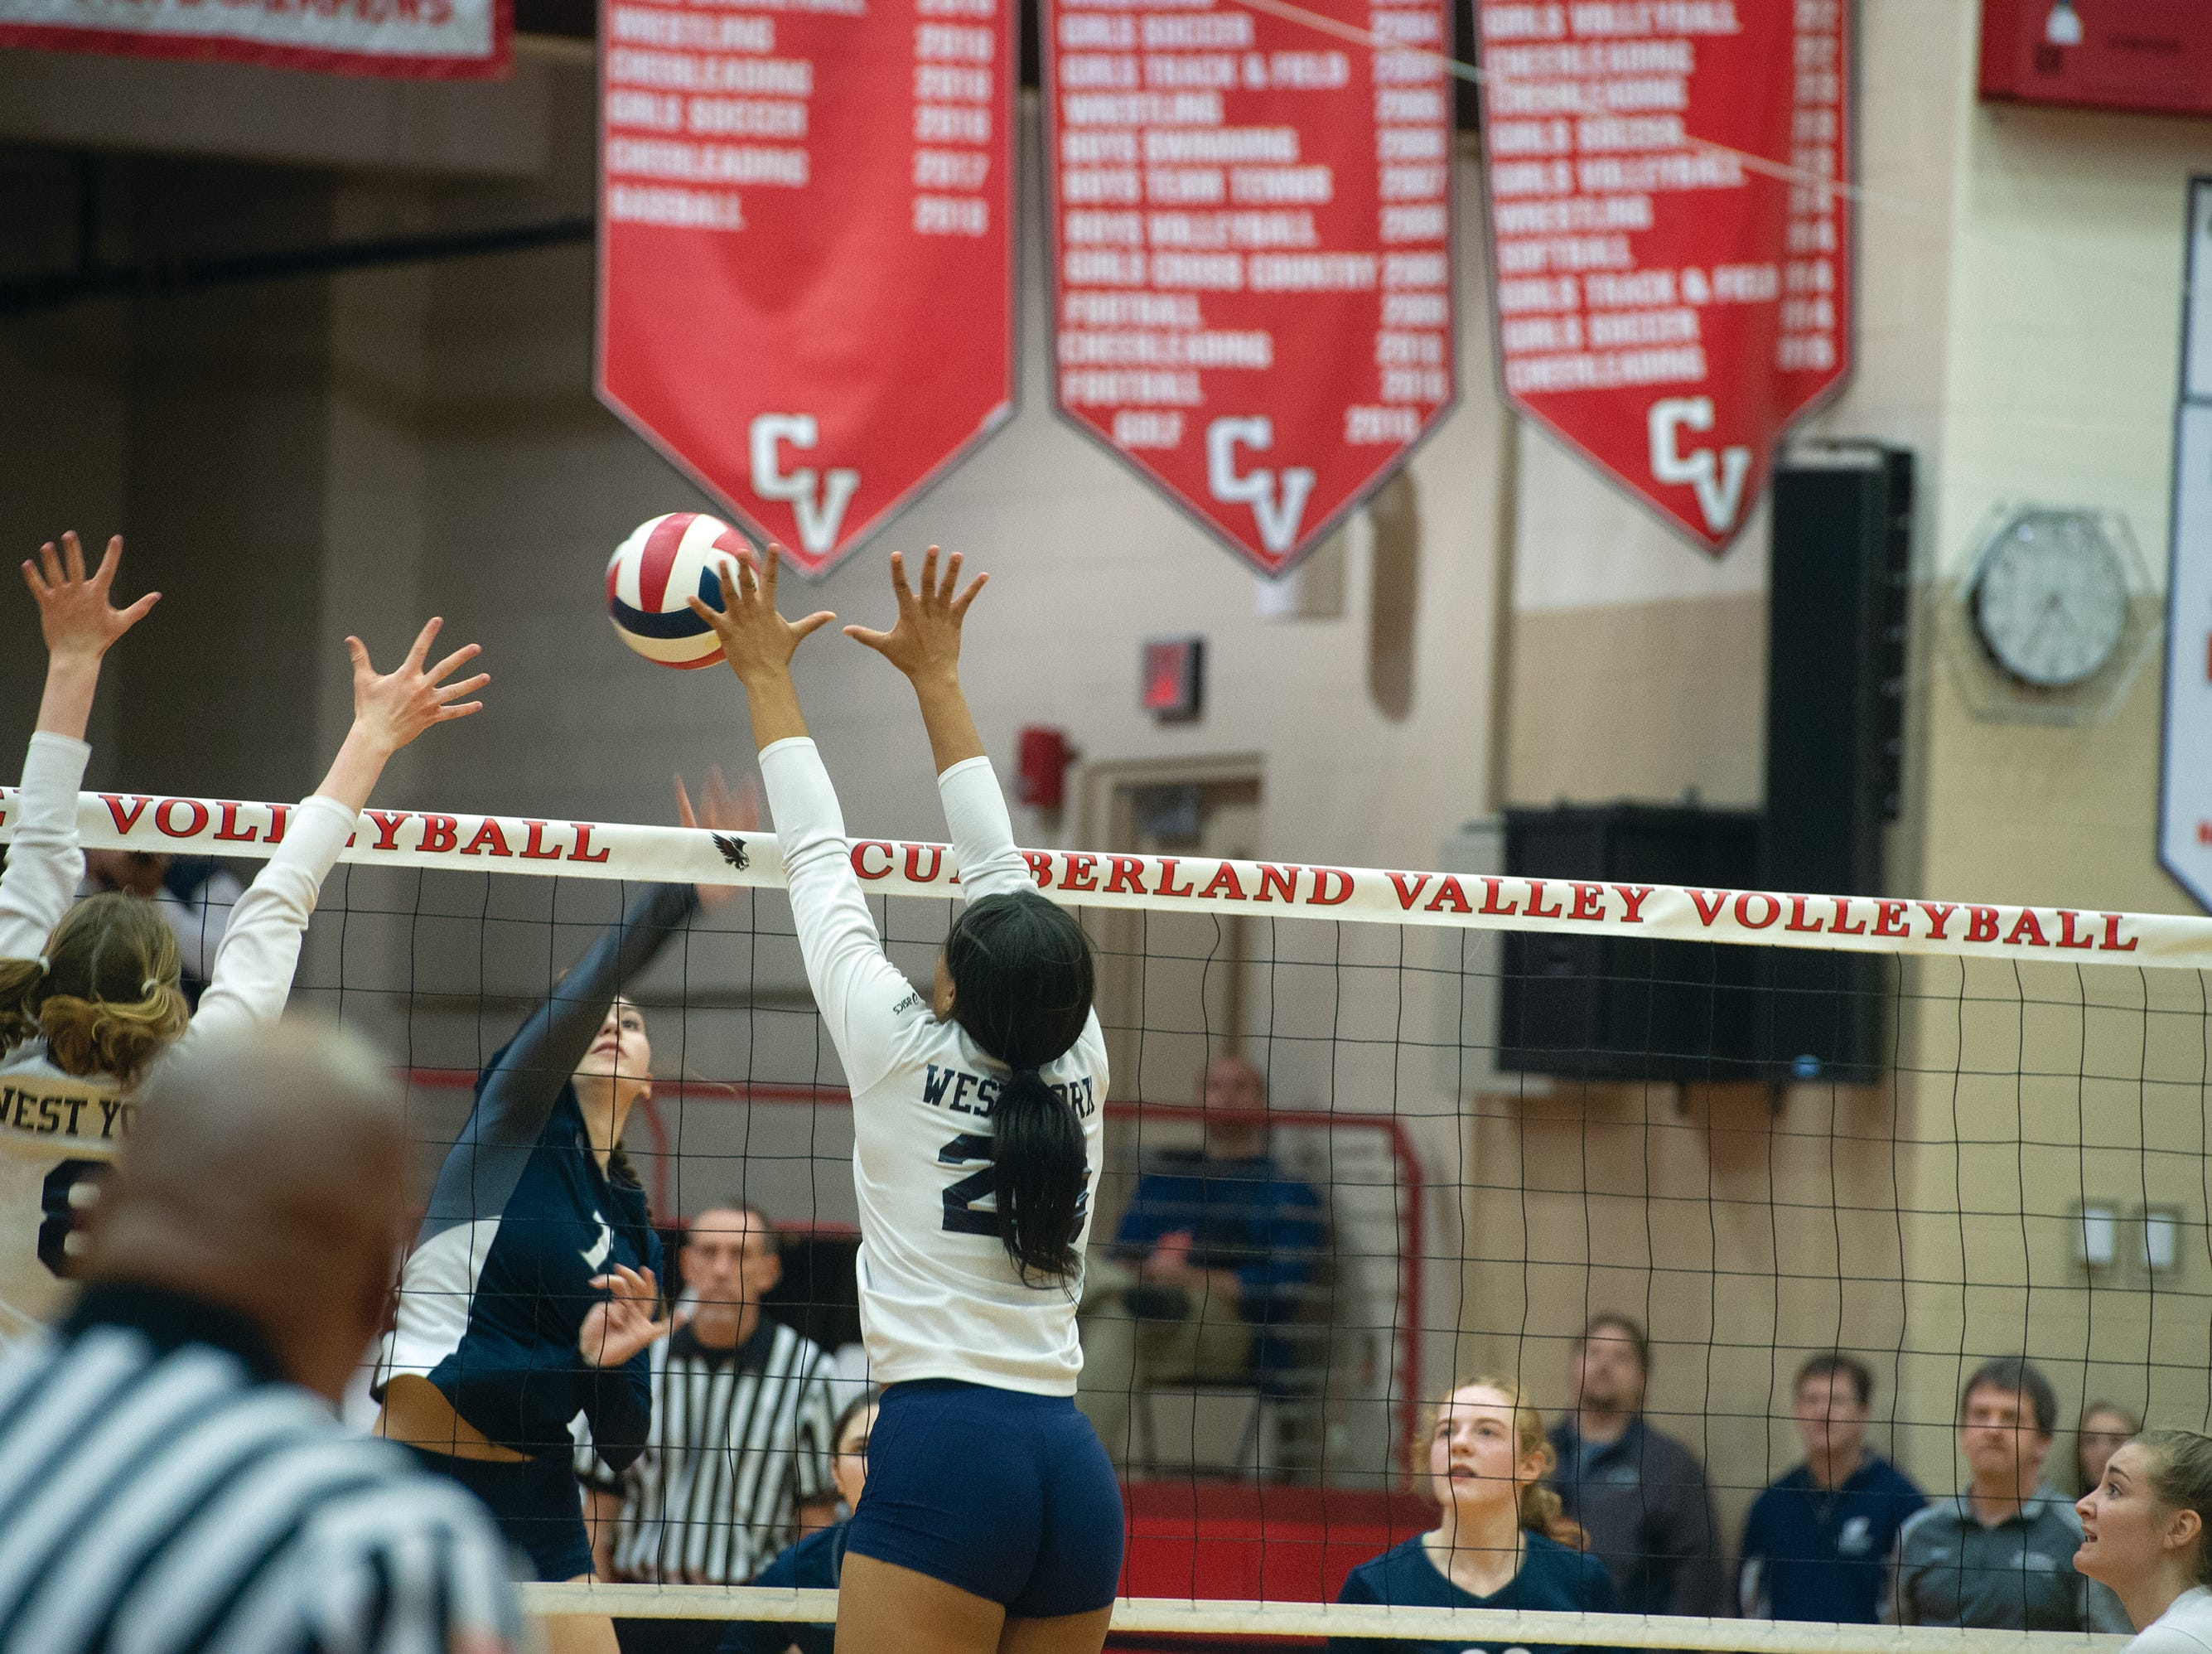 A Warren player tries to split the West York double block of Julia Rill (8) and Alayna Harris, but hits it right into Harris' hands Saturday in the third game of the PIAA Class 3A girls' volleyball championship. West York won the title in three games on Nov. 17, 2018 at Cumberland Valley High School.